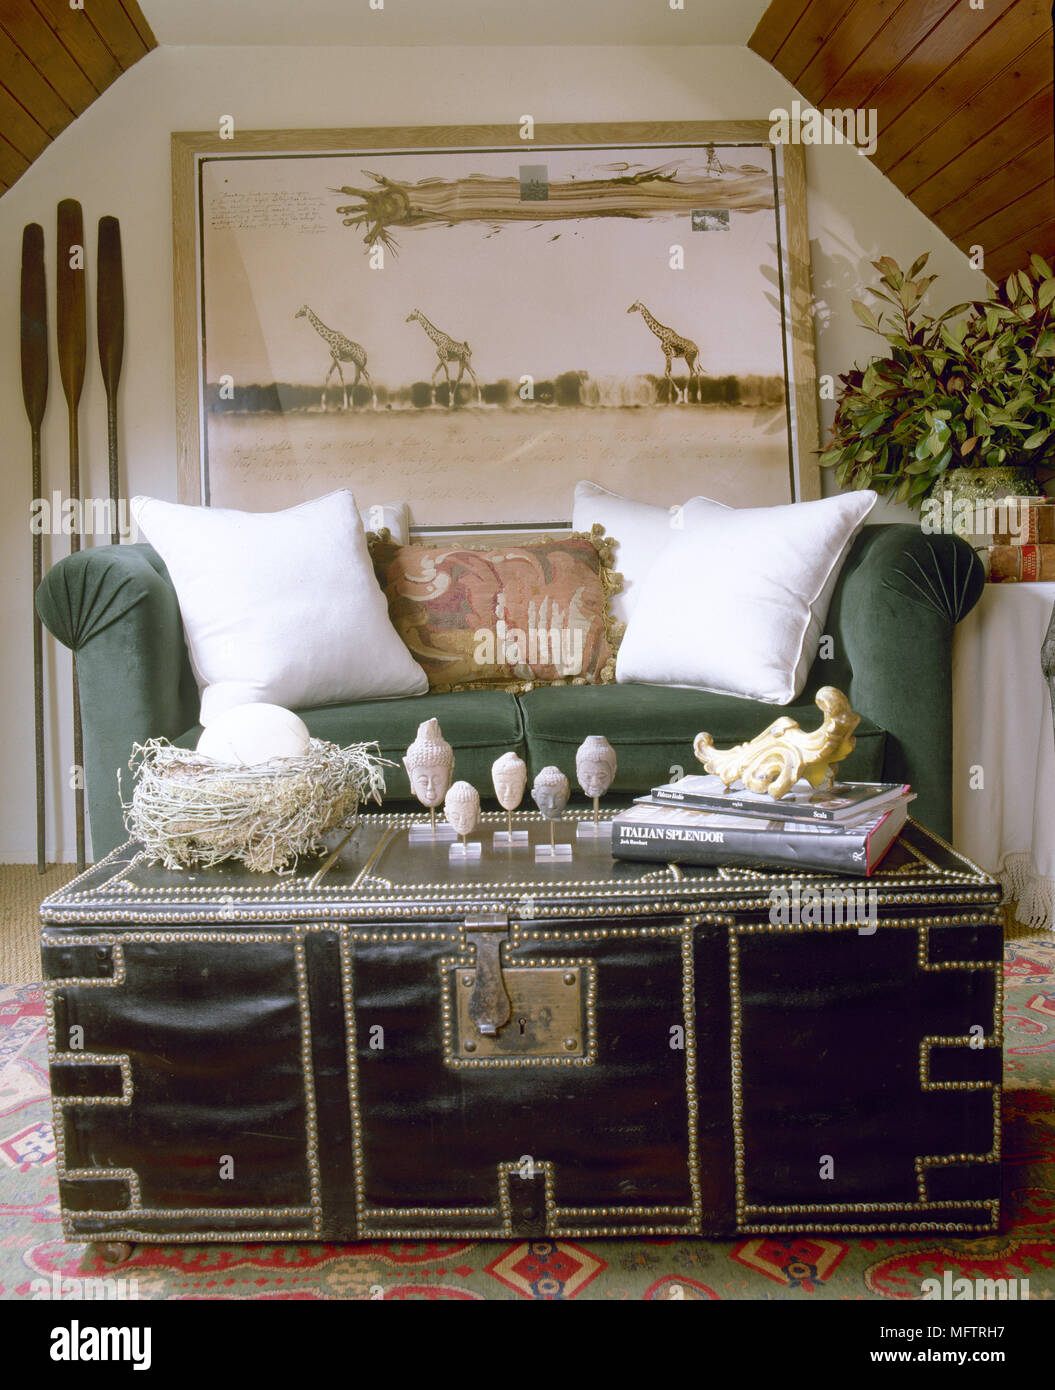 Exotic Sitting Room With A Sloping, Wood Panelled Ceiling, Sofa, Trunk  Coffee Table, And Safari Artwork.